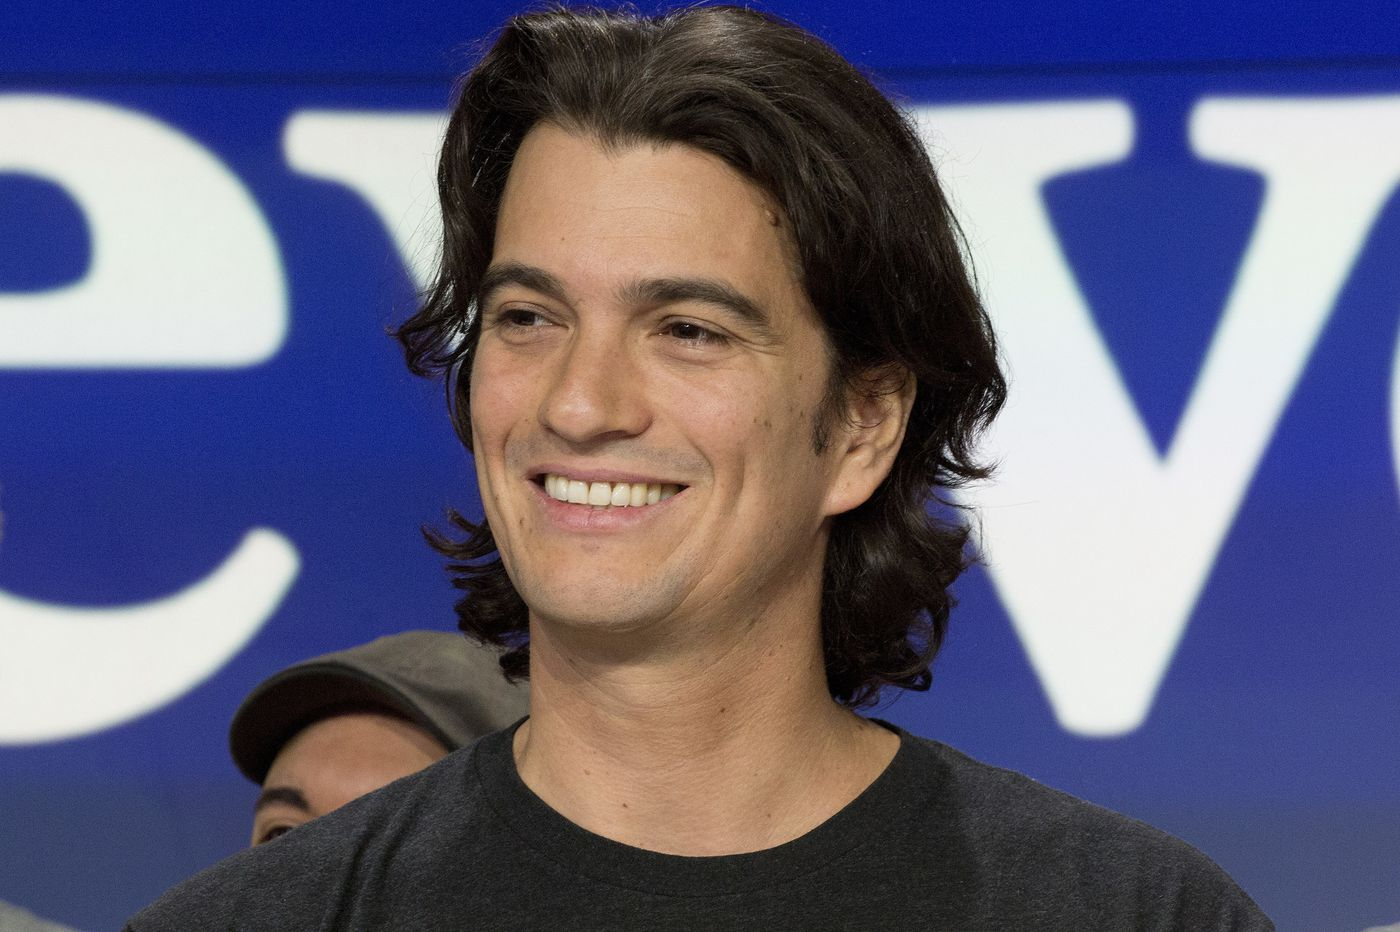 WeWork's cofounder and CEO Adam Neumann will step down, company says